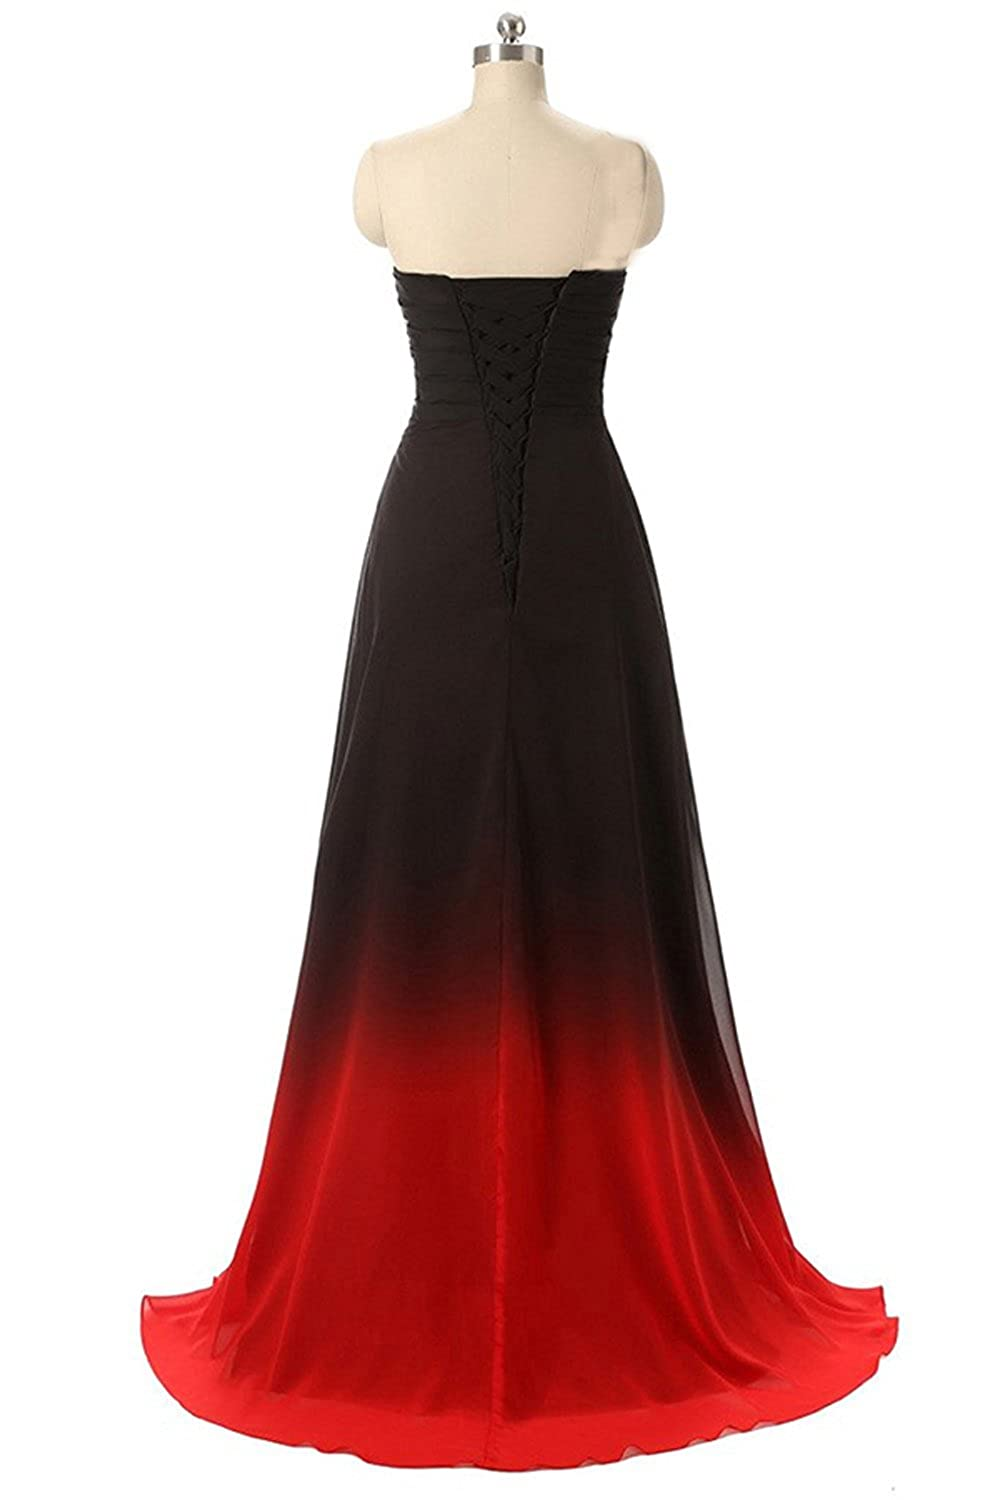 103cde26a5 Amazon.com  ZVOCY Gradient Prom Dress Formal Evening Gowns Beaded Ombre  Chiffon Long Prom Party Dresses  Clothing